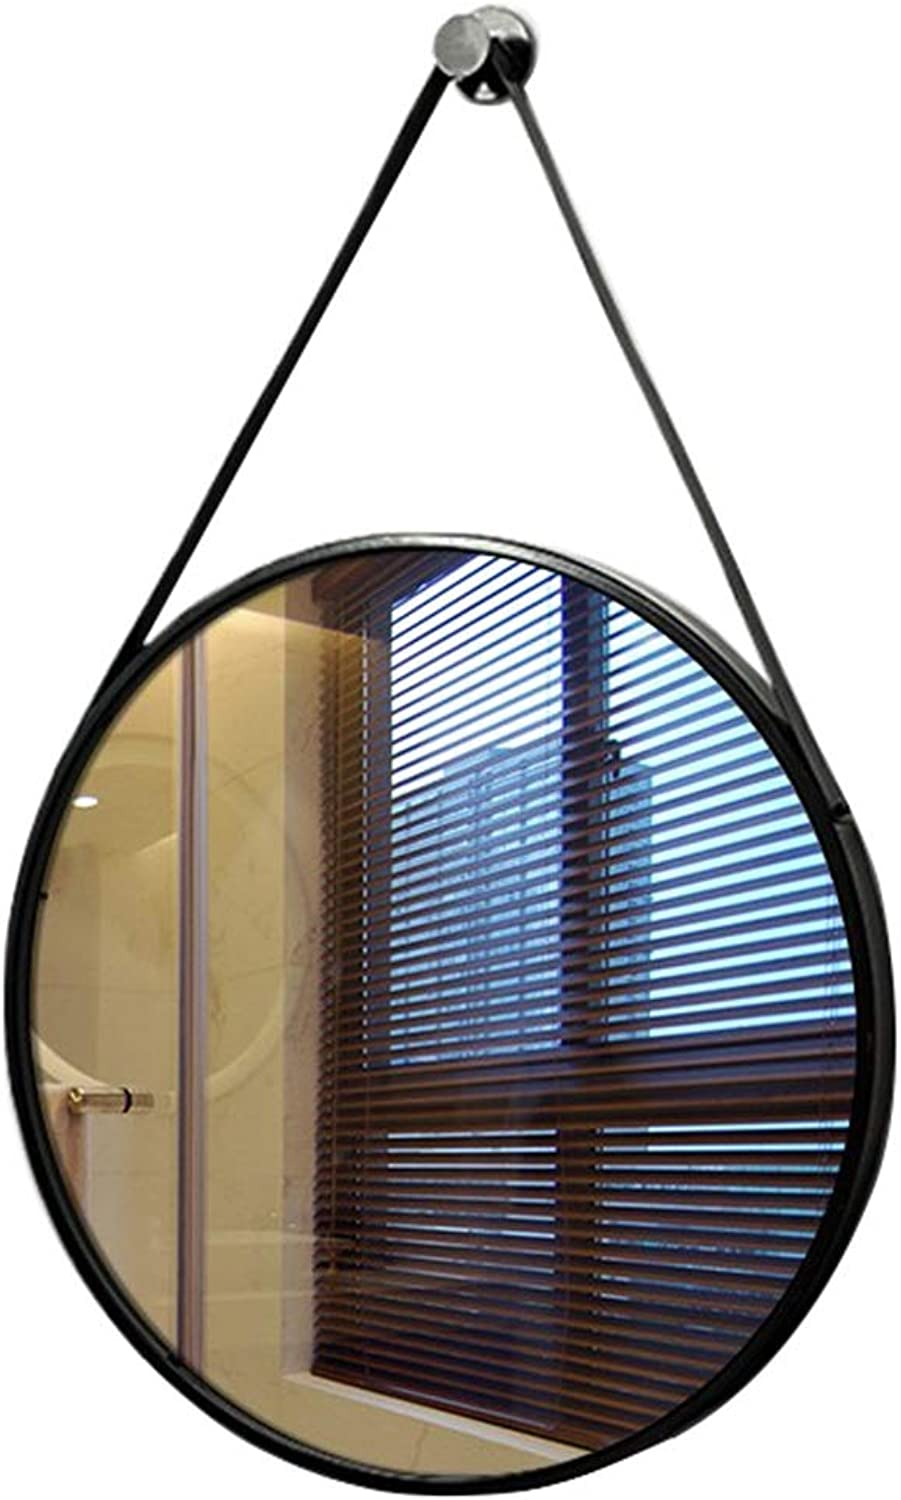 Round Metal Wall Mirror Hanging Bathroom Makeup Shaving Iron Mirrors Large Dressing for Apartment Living Room Bedroom (15.7 19.7 23.6 27.5 Inch)